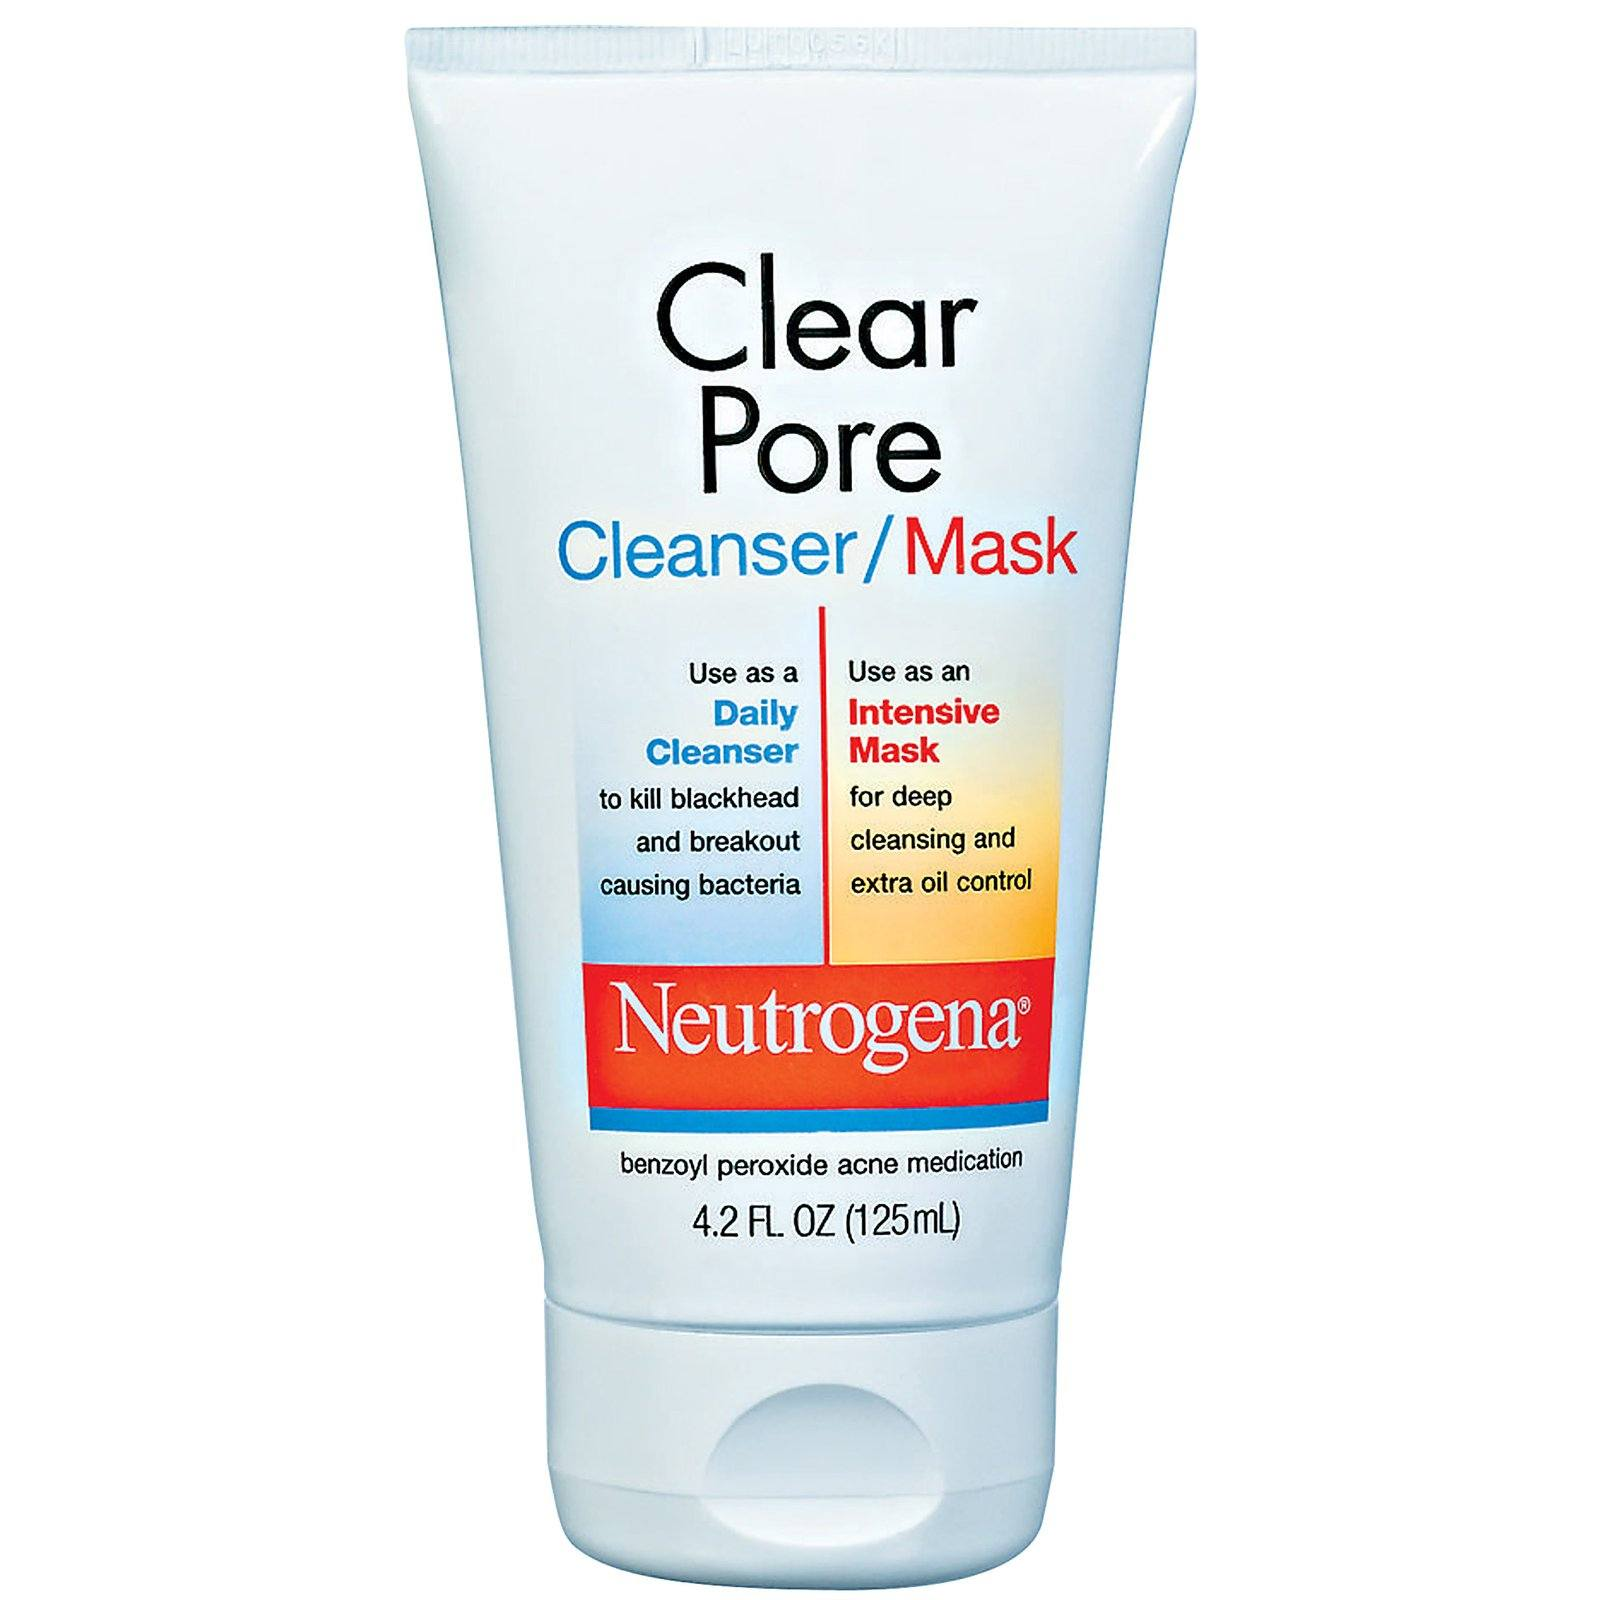 Neutrogena Clear Pore Cleanser / Mask Reviews: A Very Effective Acne Management Solution - RxStars